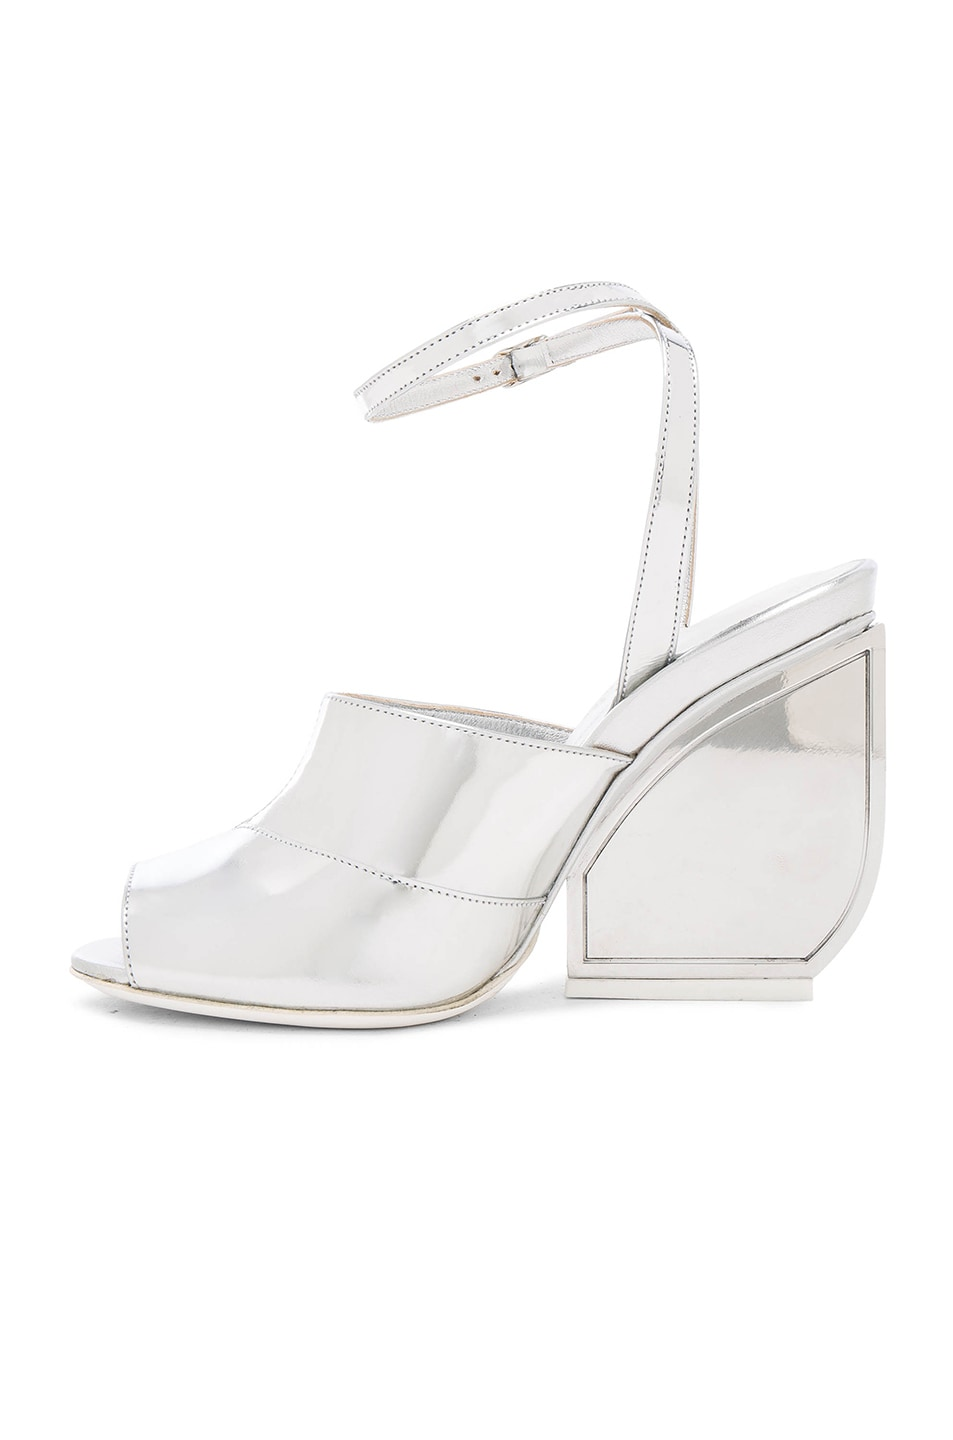 Image 5 of Maison Margiela Mirror Leather Heels in Silver